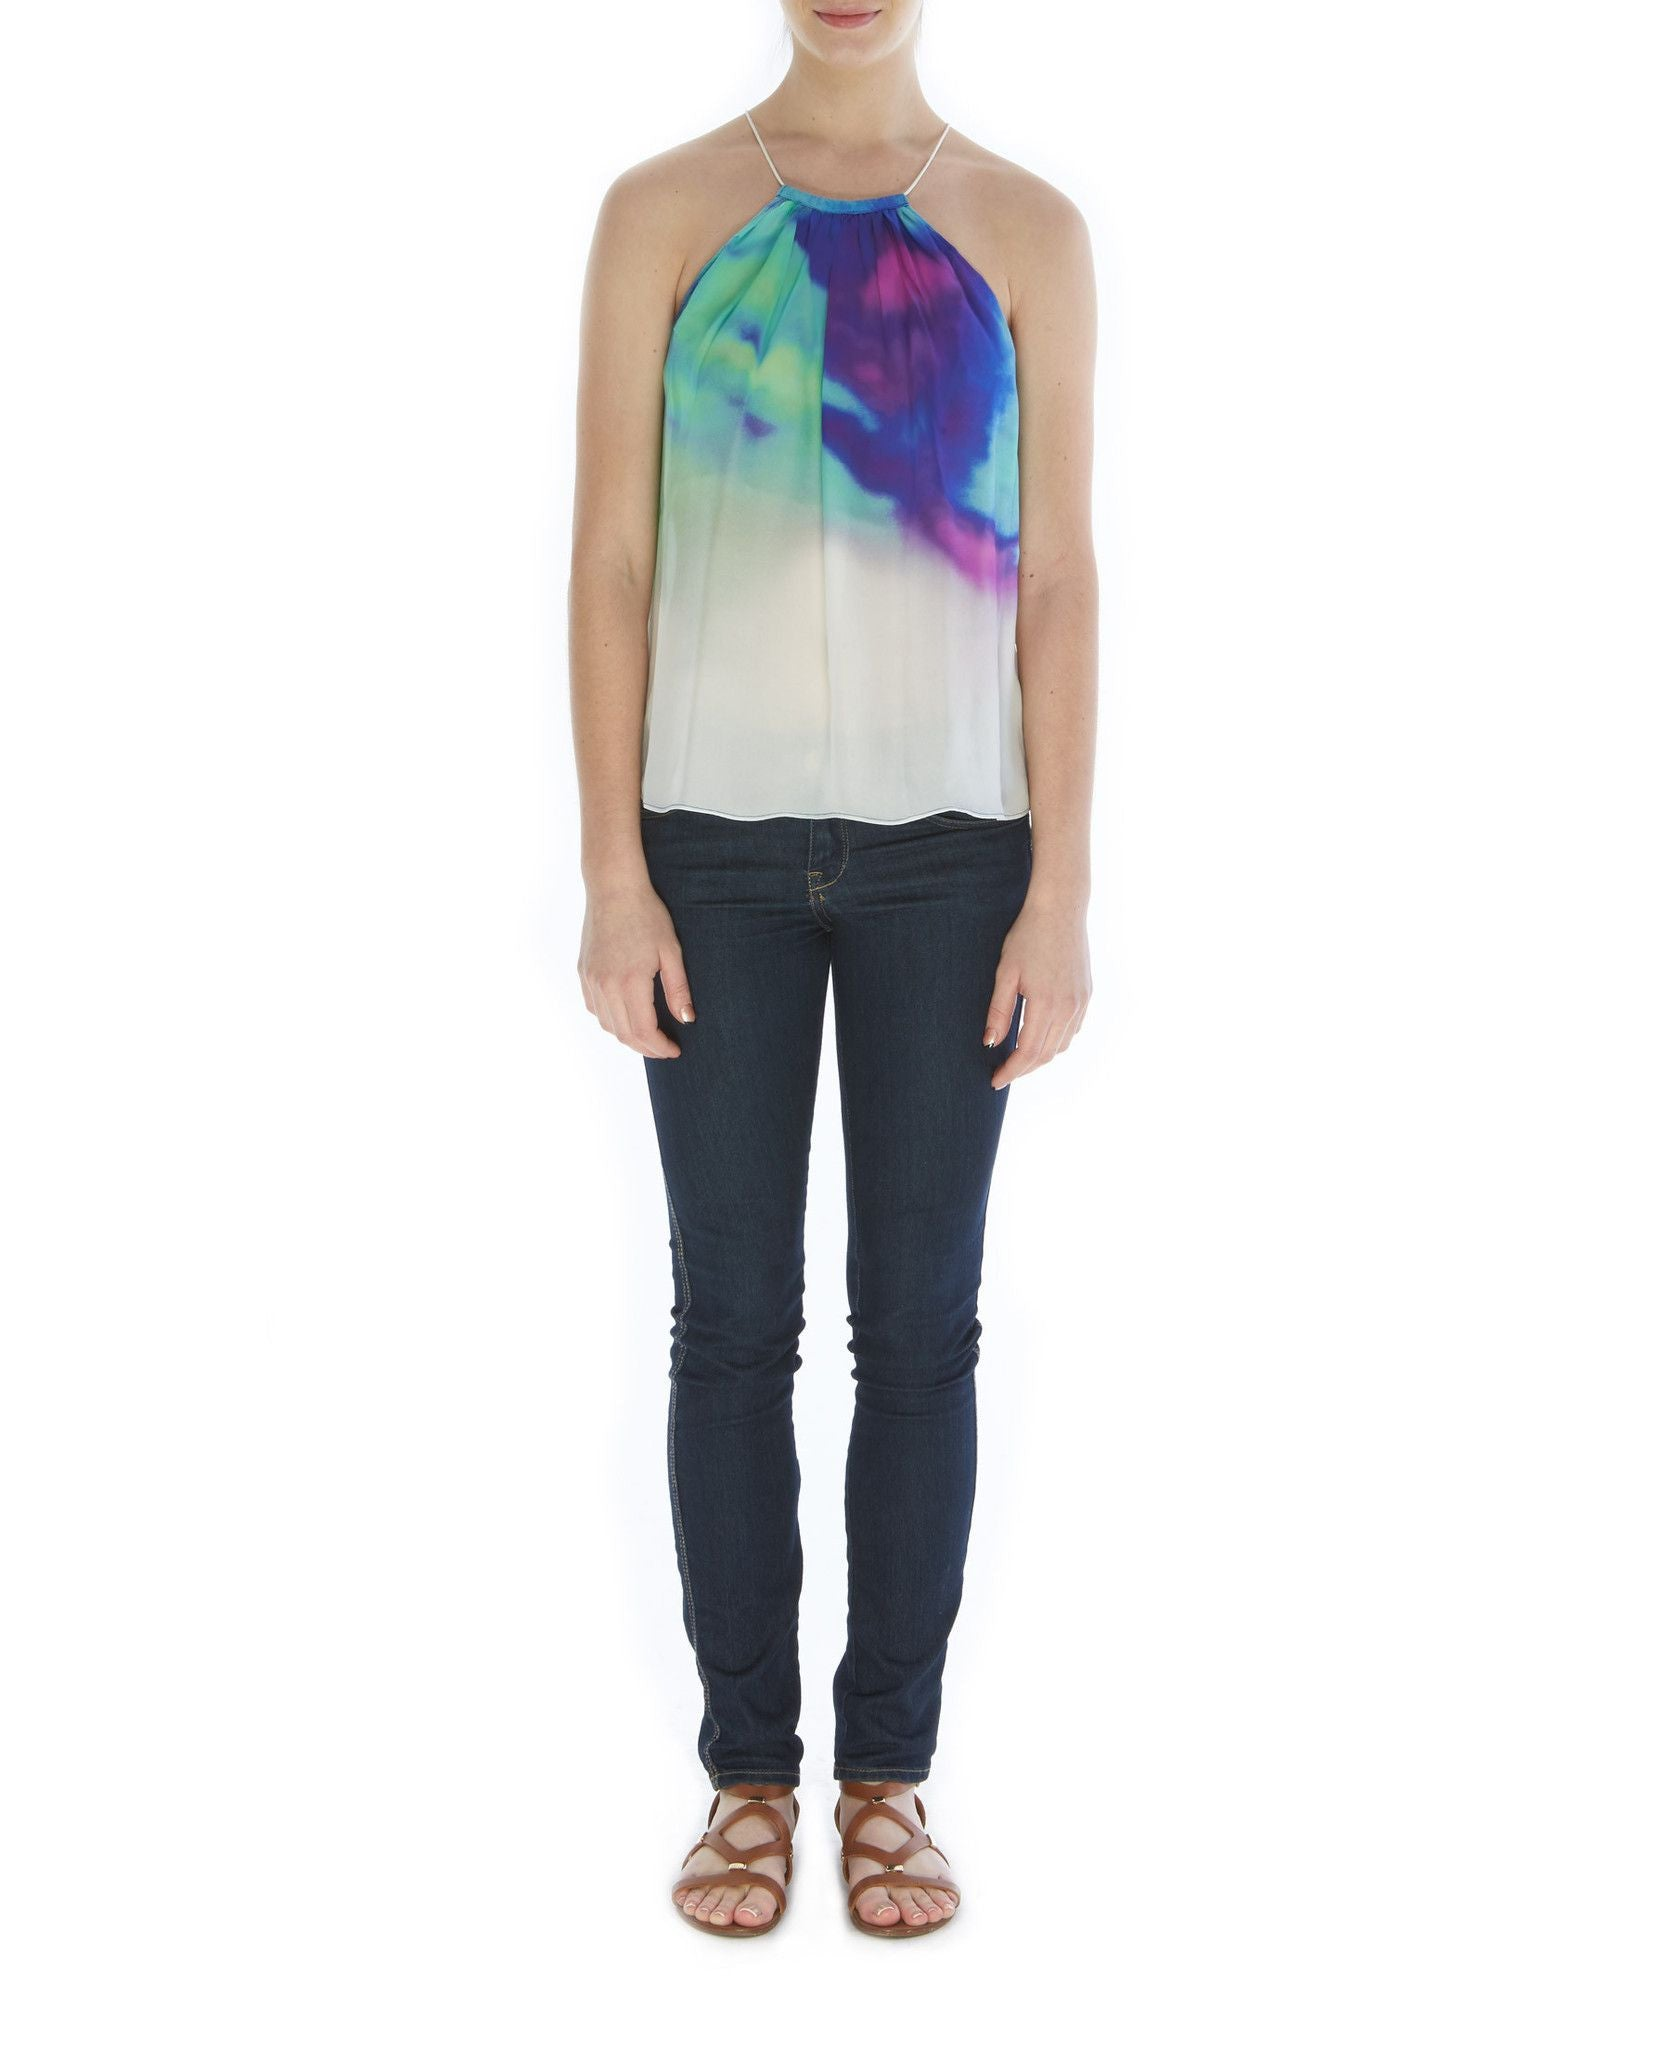 T104 ALLY DBL GGT TIE TOP TANK WATERCOLOR